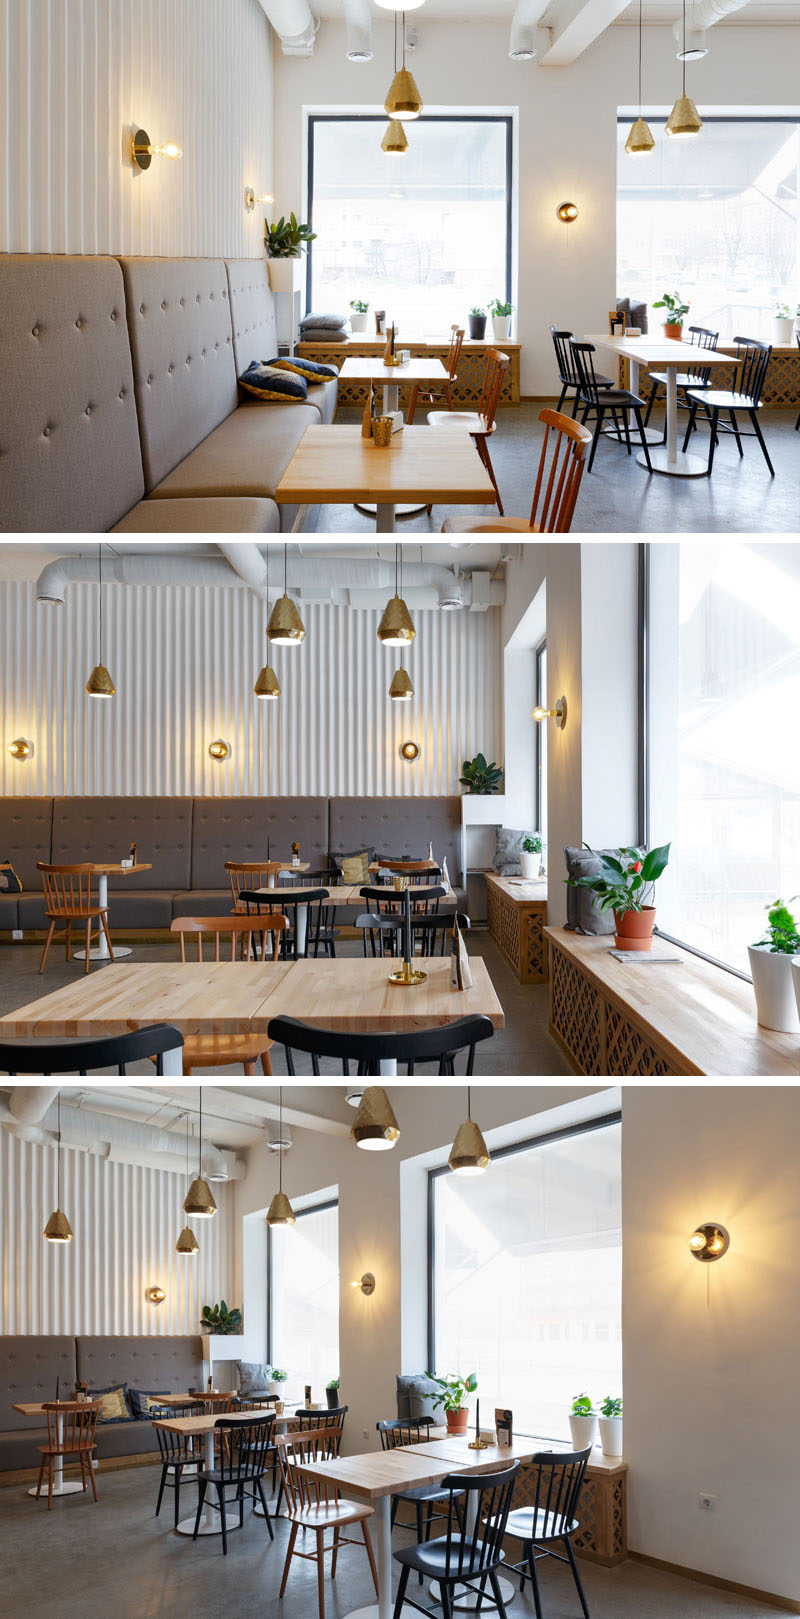 Located next to the windows in this modern coffee shop, are wooden benches that are able to be used as additional seating, making them ideal for watching the world go by while having a cup of coffee. A few plants scattered around the coffee shop adds a natural touch.